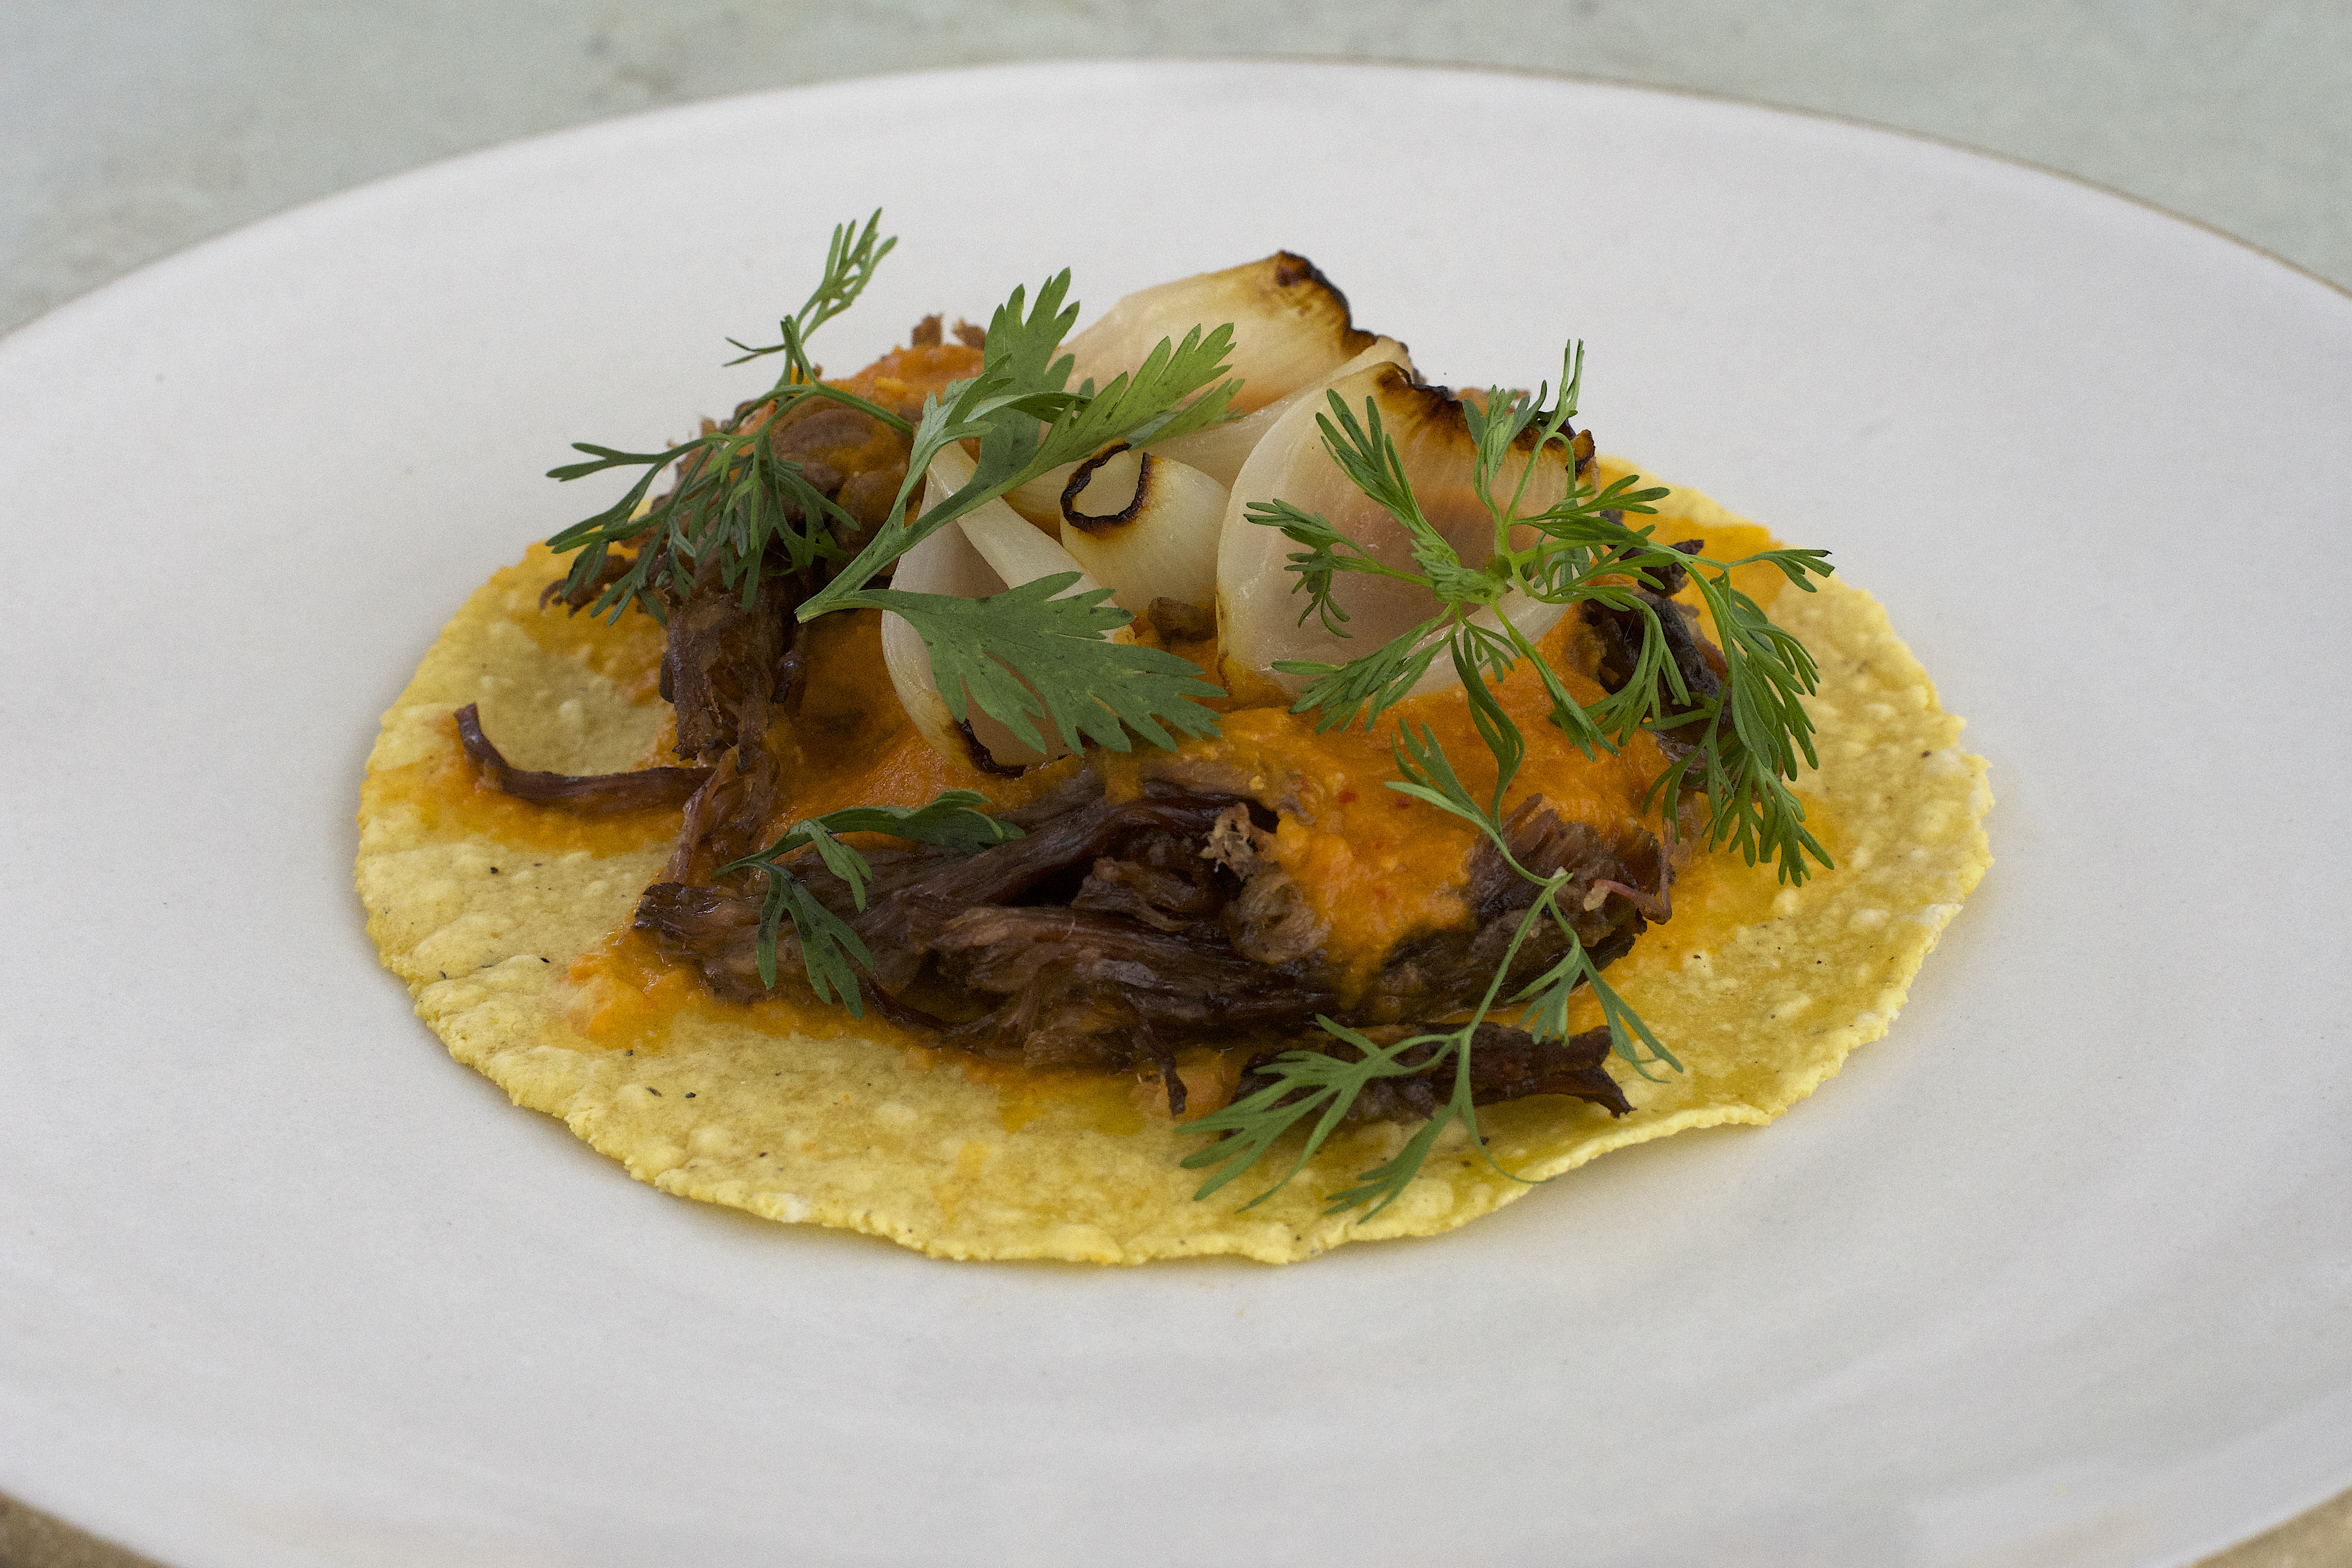 Stringy short rib, cilantro, salsa, and pickled vegetables appear on a bumpy yellow corn tortilla in the center of a larger white plate